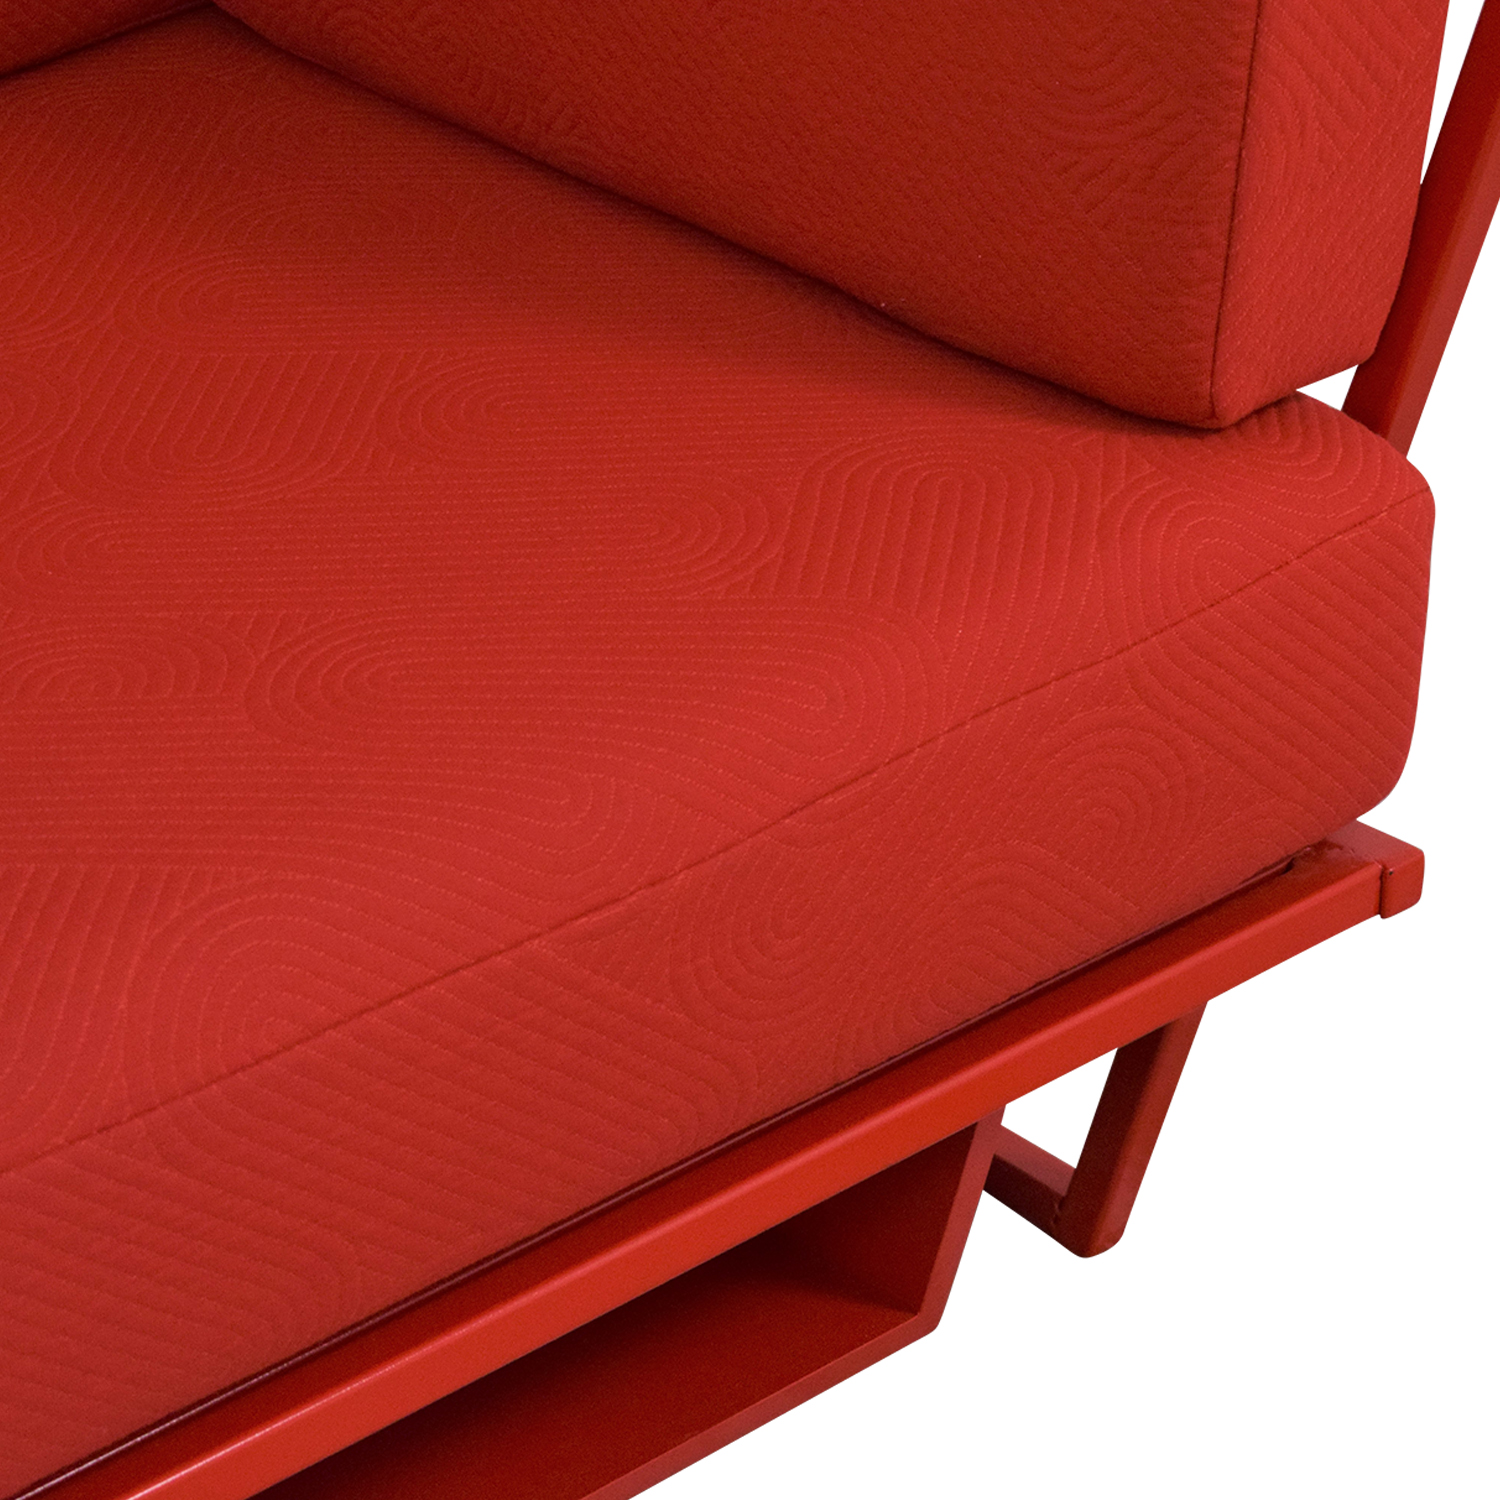 Collector NYC Custom Red Sofa sale